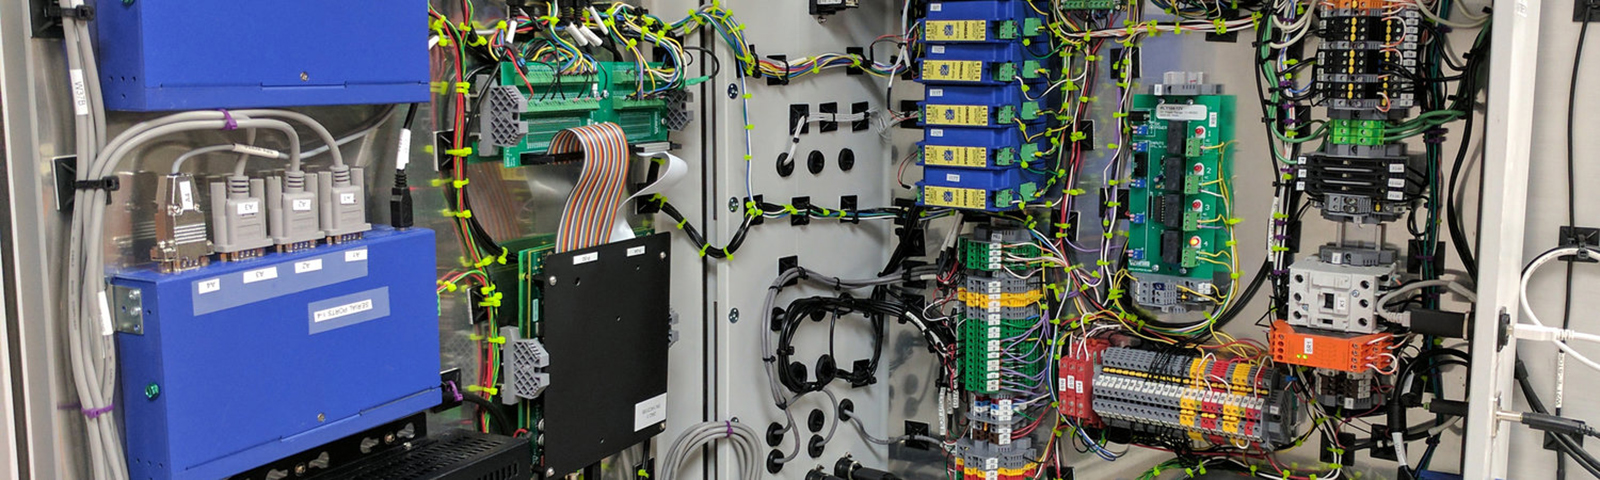 The control box for Dimien's automated pilot scale manufacturing system. <span class='image-credits'>Brian Schultz</span>